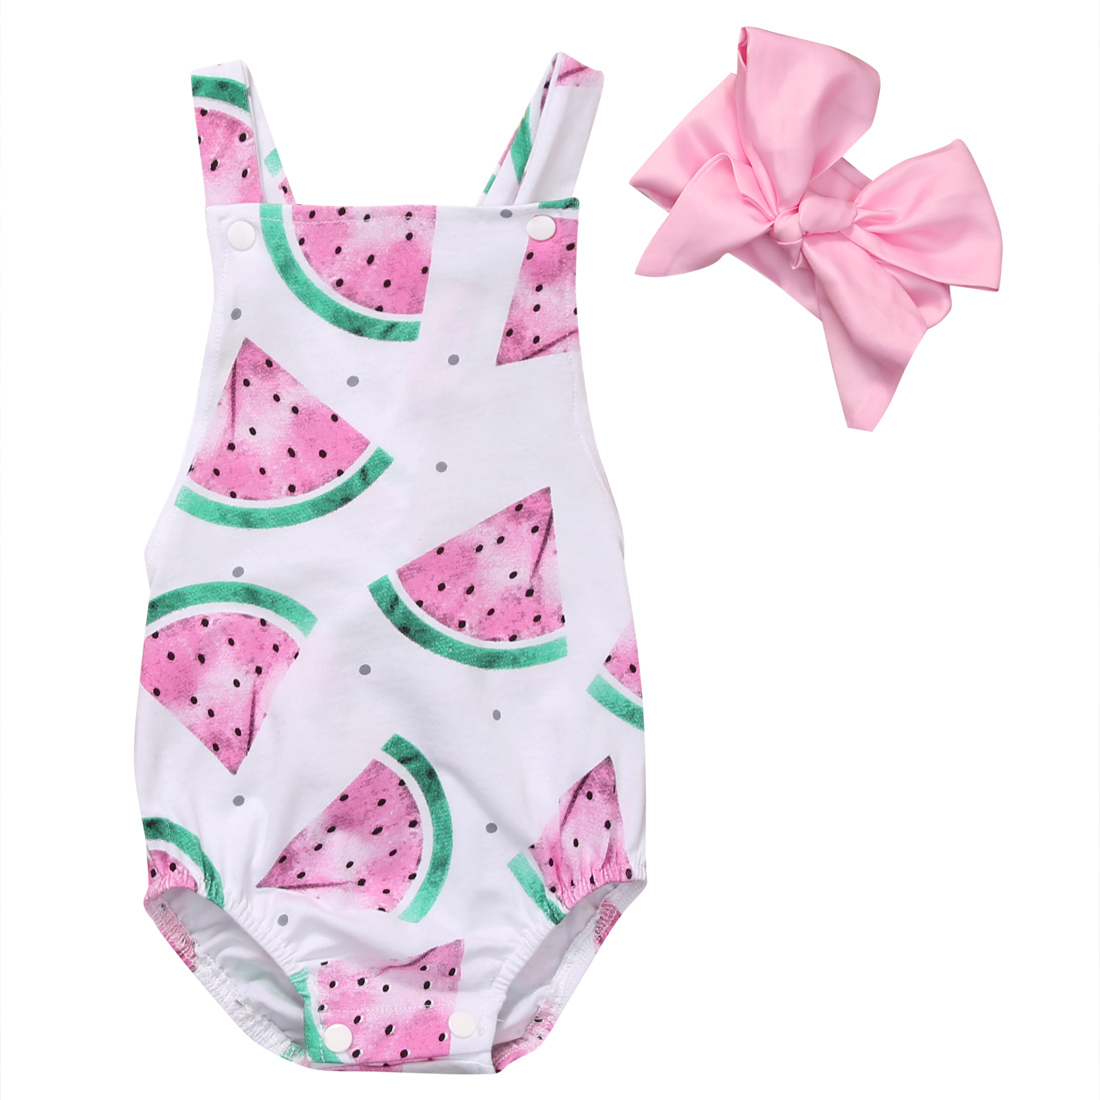 Sweety Baby Girl Rompers Watermelon Newborn Baby Girl Kids Romper Headband Sleeveless Summer Baby Girl Clothes Outfits 0-24M summer newborn baby rompers ruffle baby girl clothes princess baby girls romper with headband costume overalls baby clothes